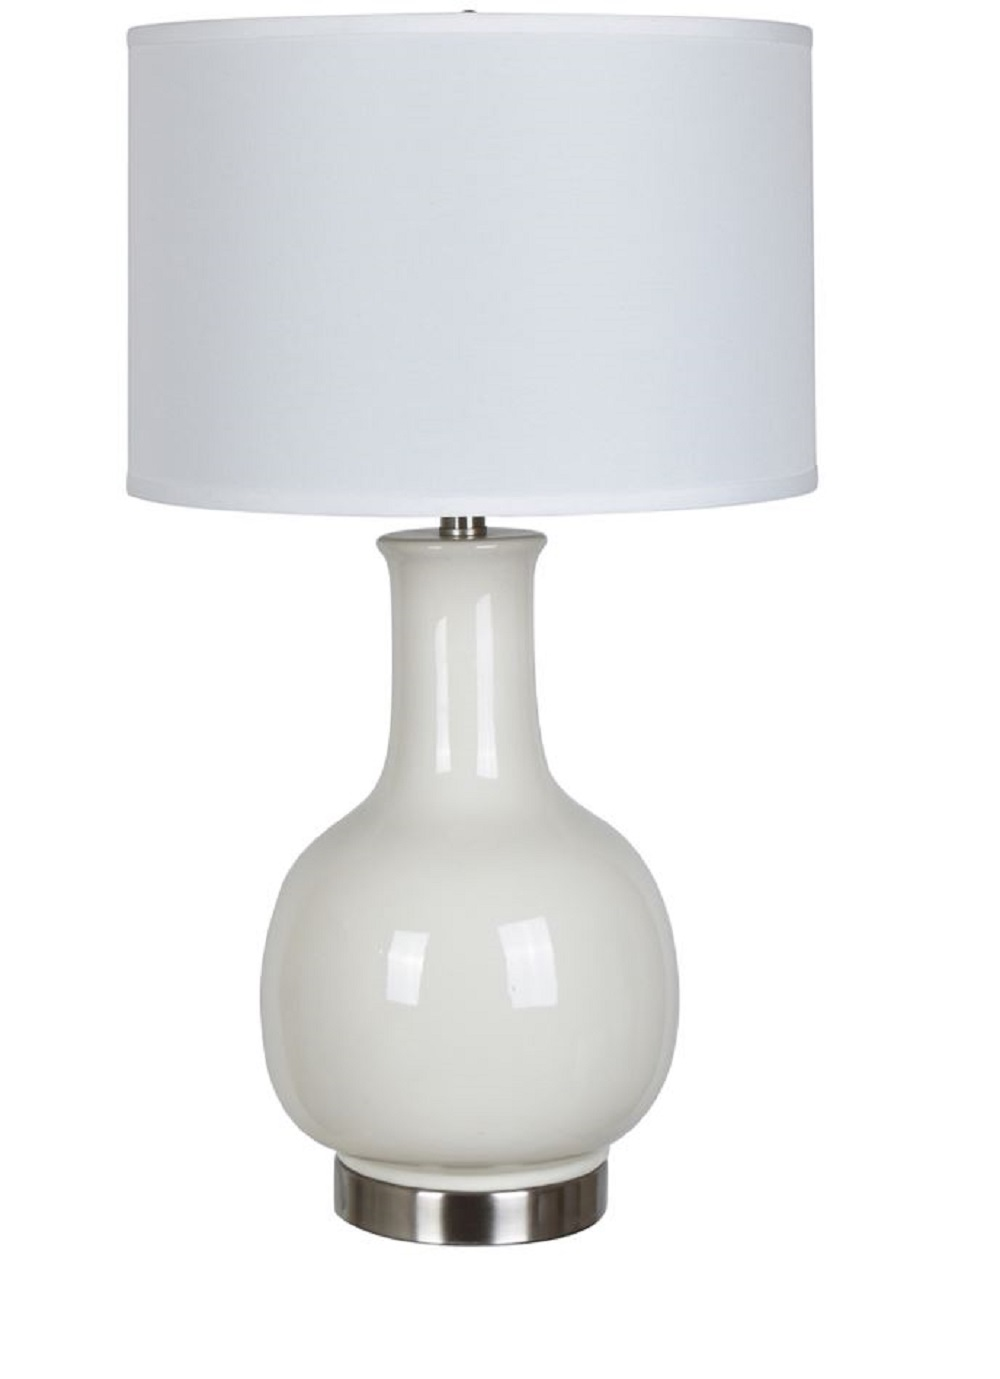 Merveilleux Swanley 26.5 Inch Ceramic And Stainless Steel Drum Table Lamp, White    Walmart.com